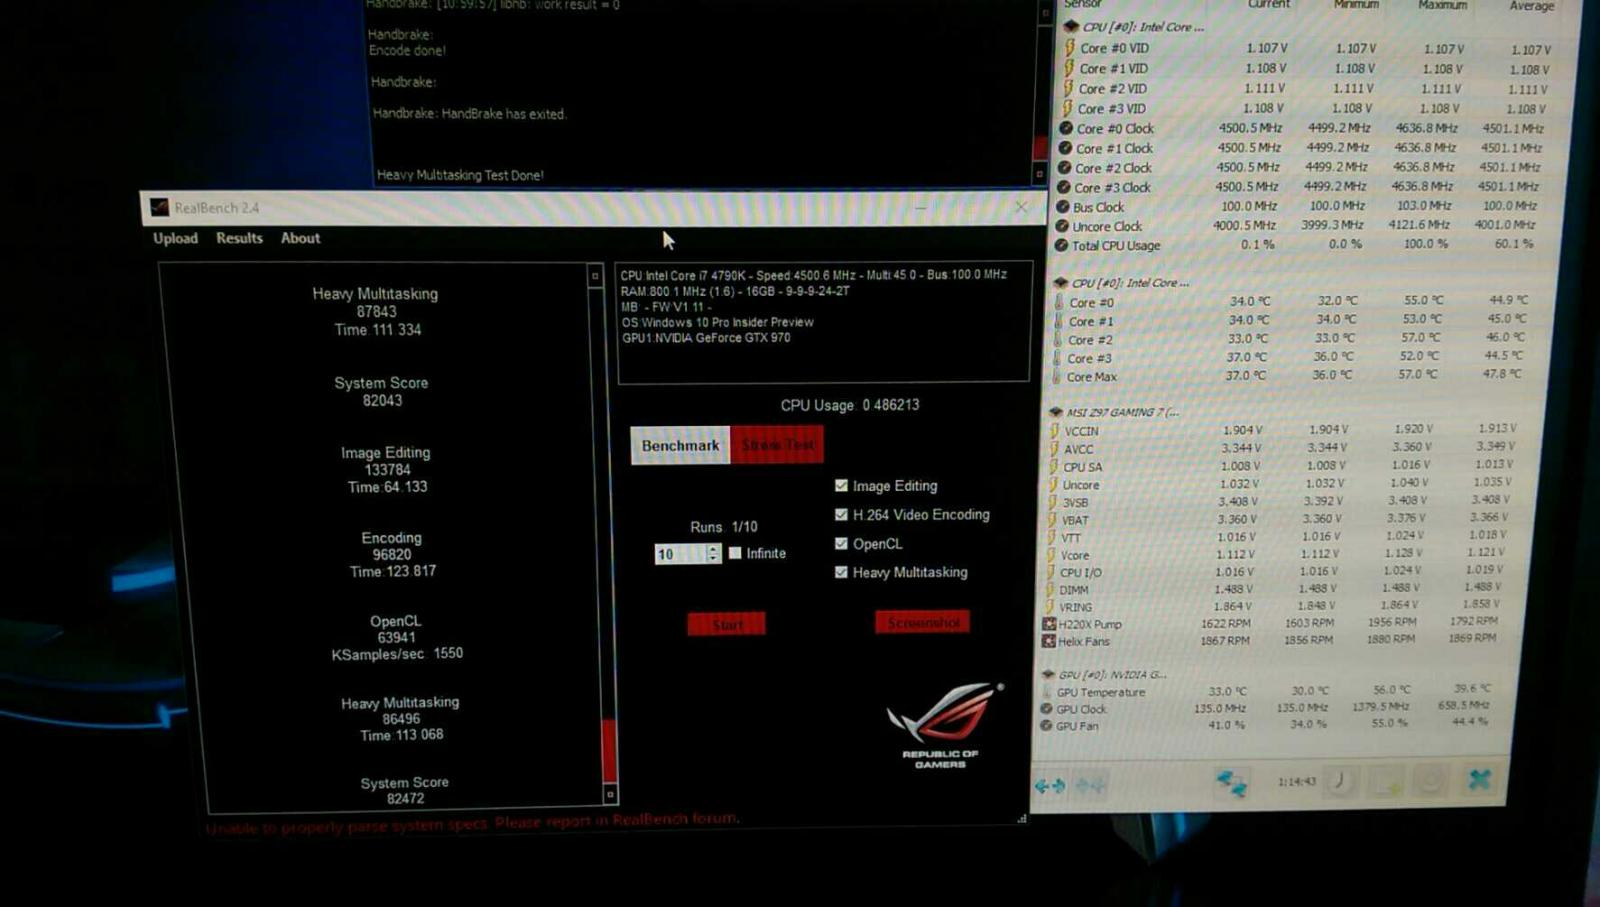 Intel Haswell 4670k + 4770K Overclocking guide - Page 31